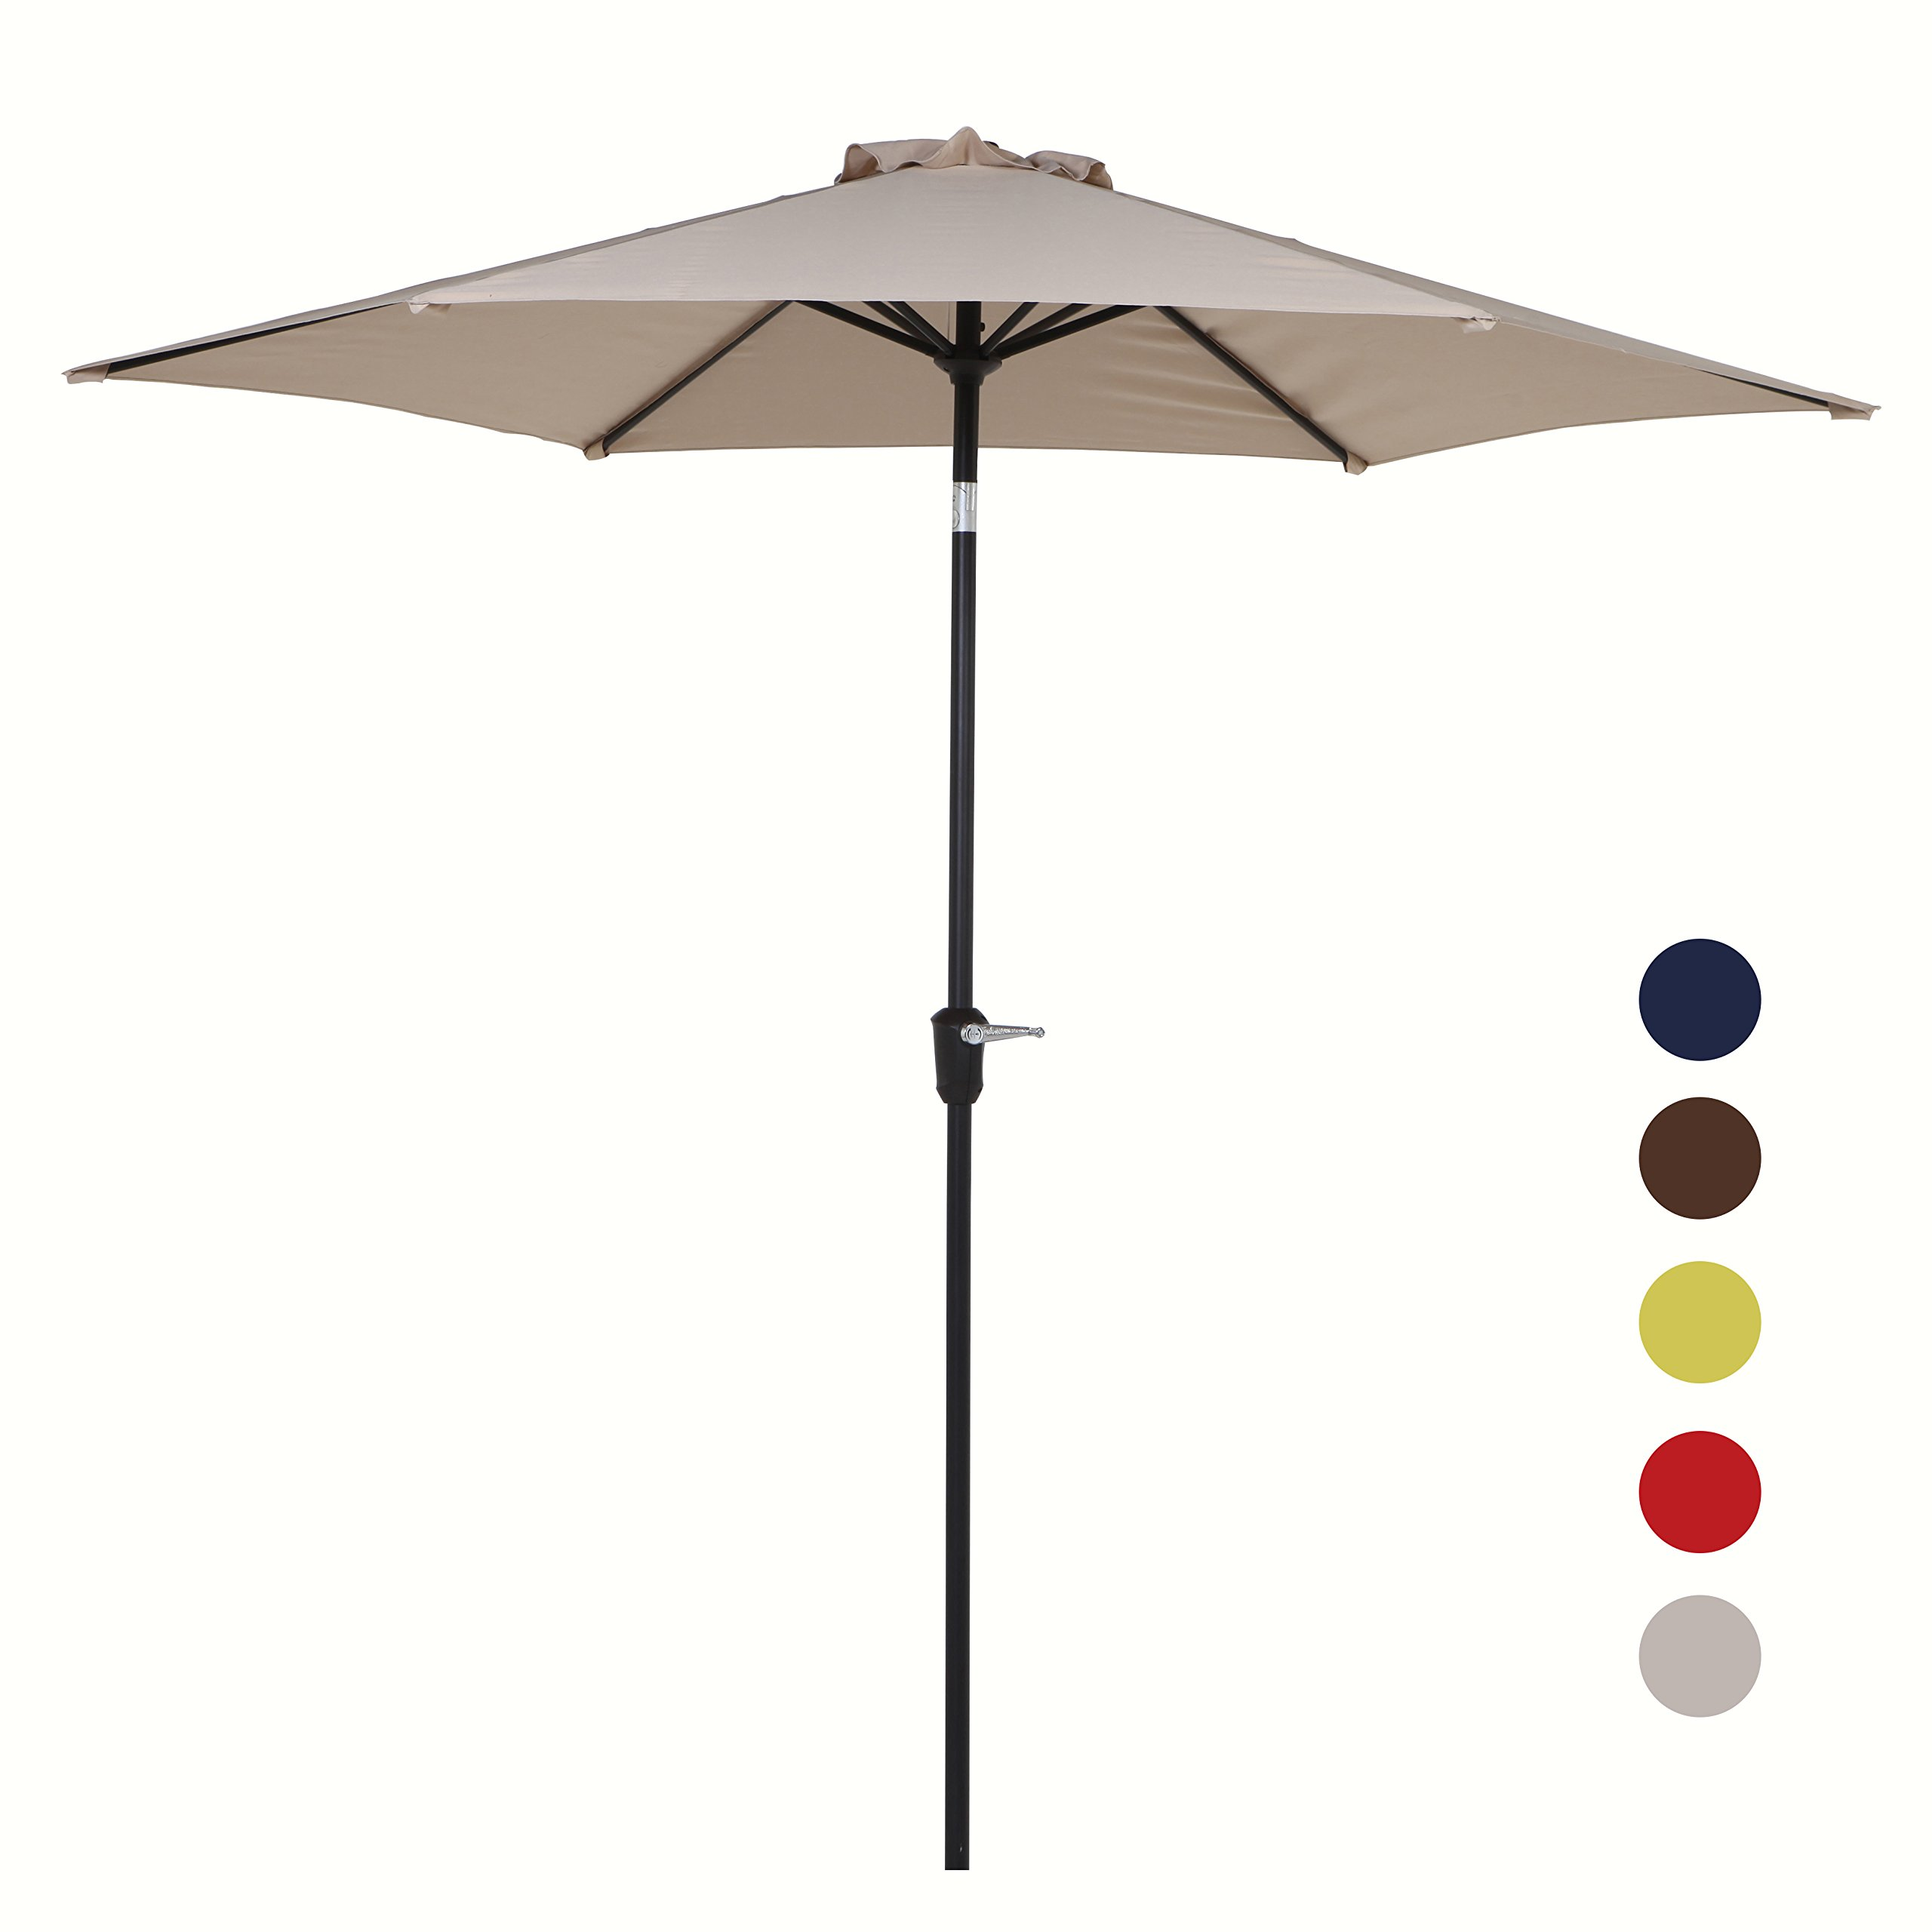 Grand patio 9FT Aluminum Patio Umbrella, UV Protective Beach Umbrella with Push Button Tilt and Crank, Powder Coated Outdoor Umbrella, Beige